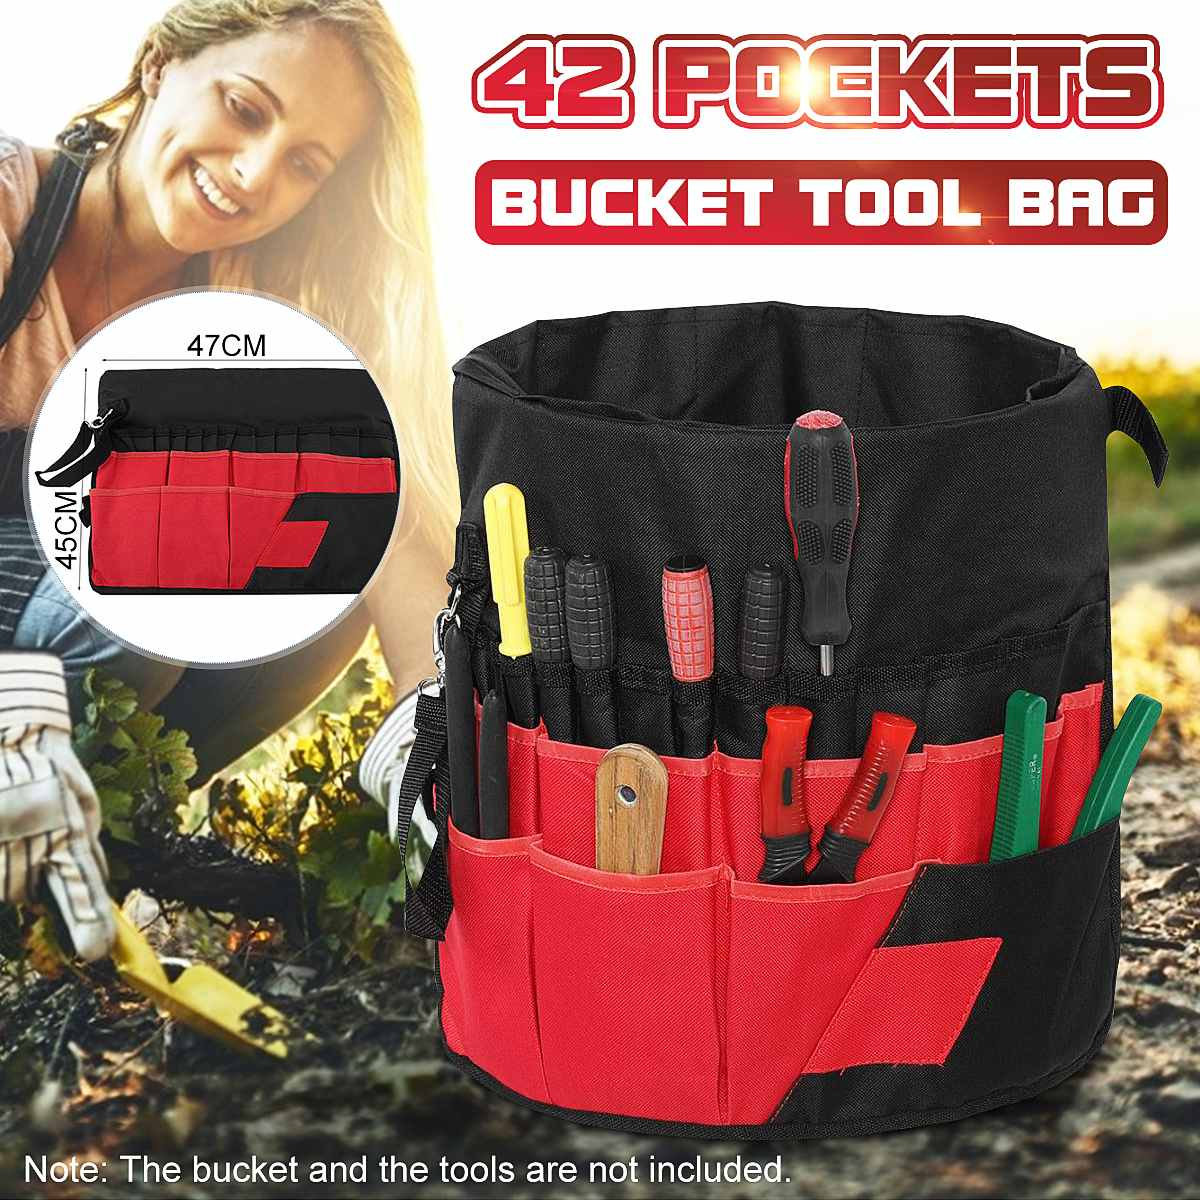 5 Gallon Bucket Tool Bag 42 Storage Pockets Garden Work Tool Set Bags Organizer (Tools Excluded) Waterproof Oxford Cloth Durable